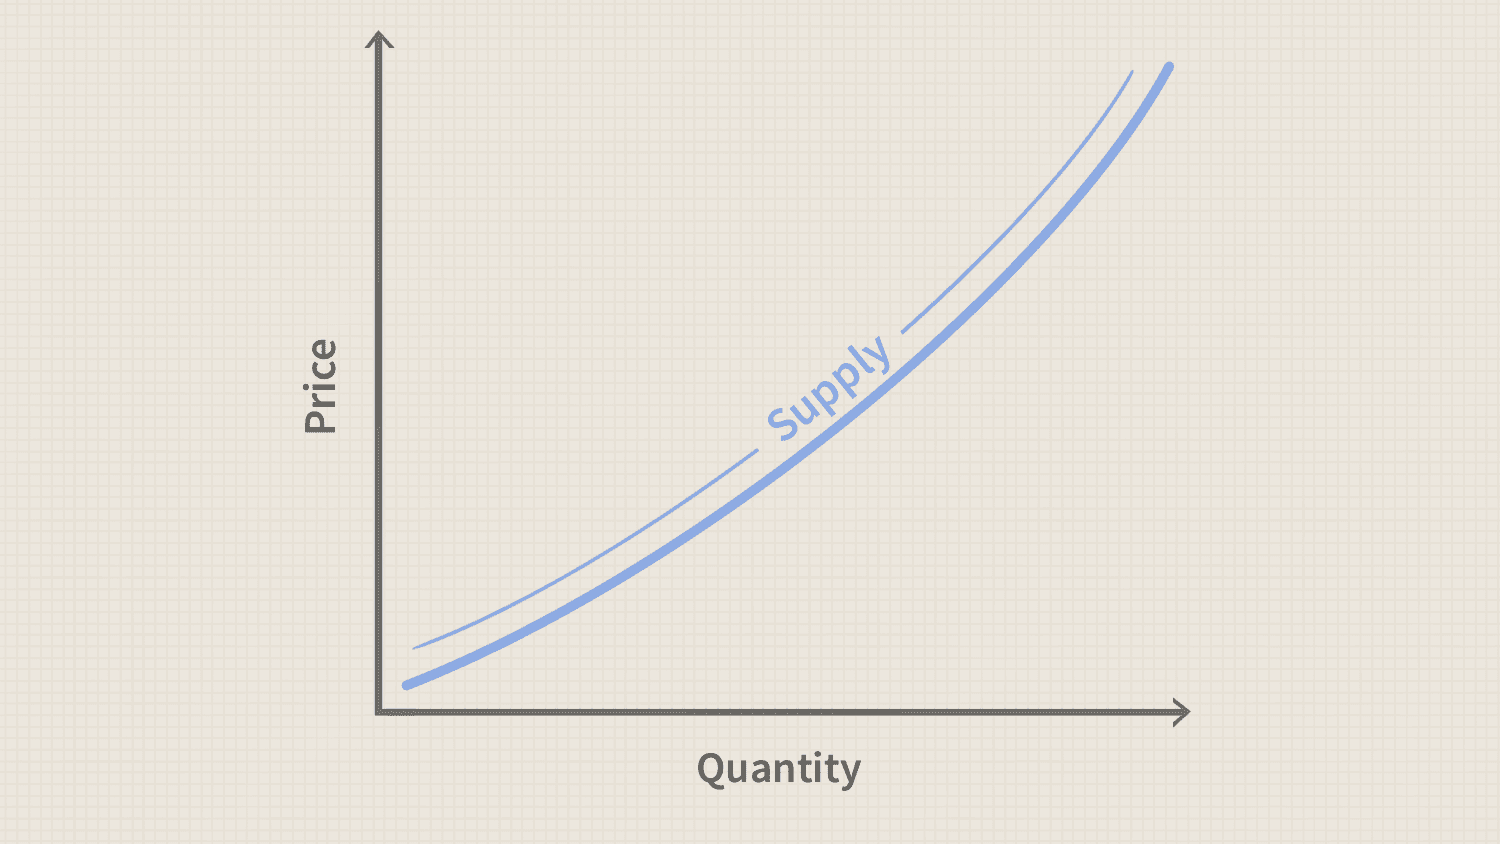 Supply Curve Definition